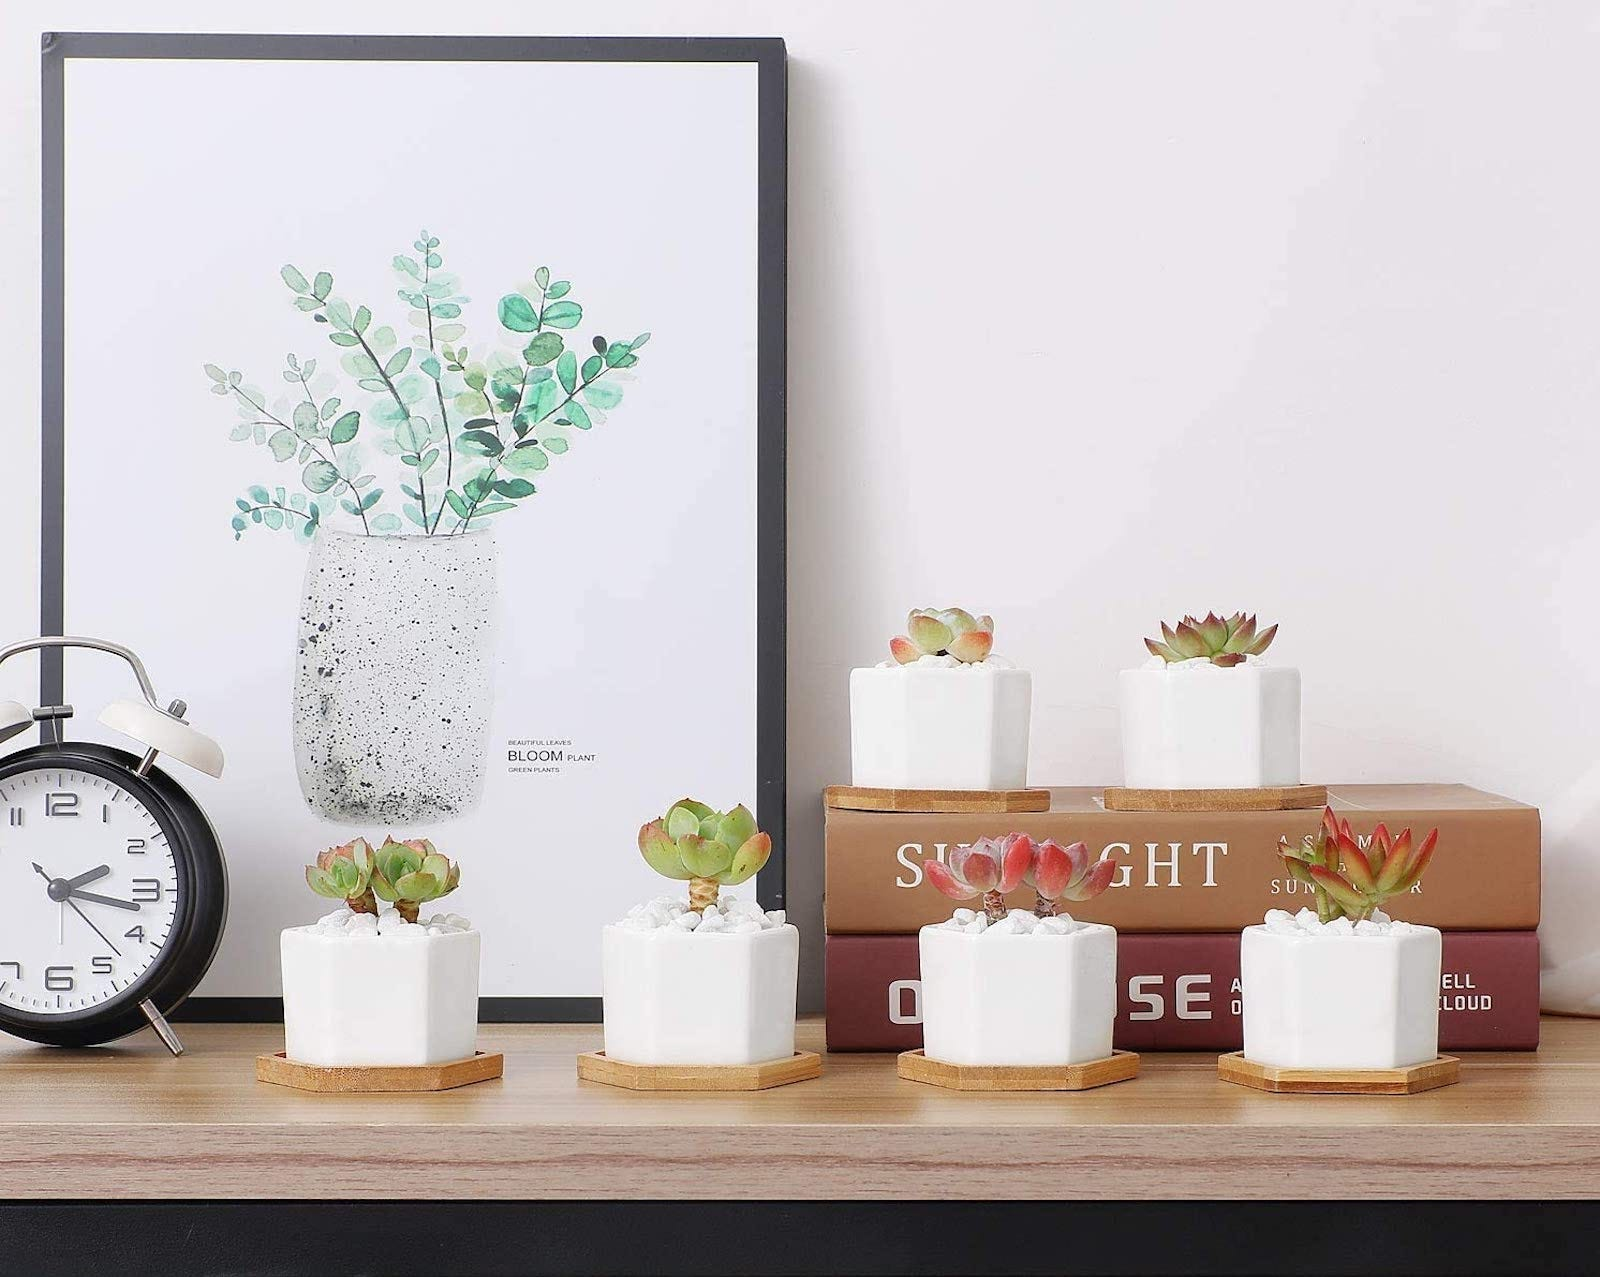 A shelf with several small white hexagonal planters with succulents in them